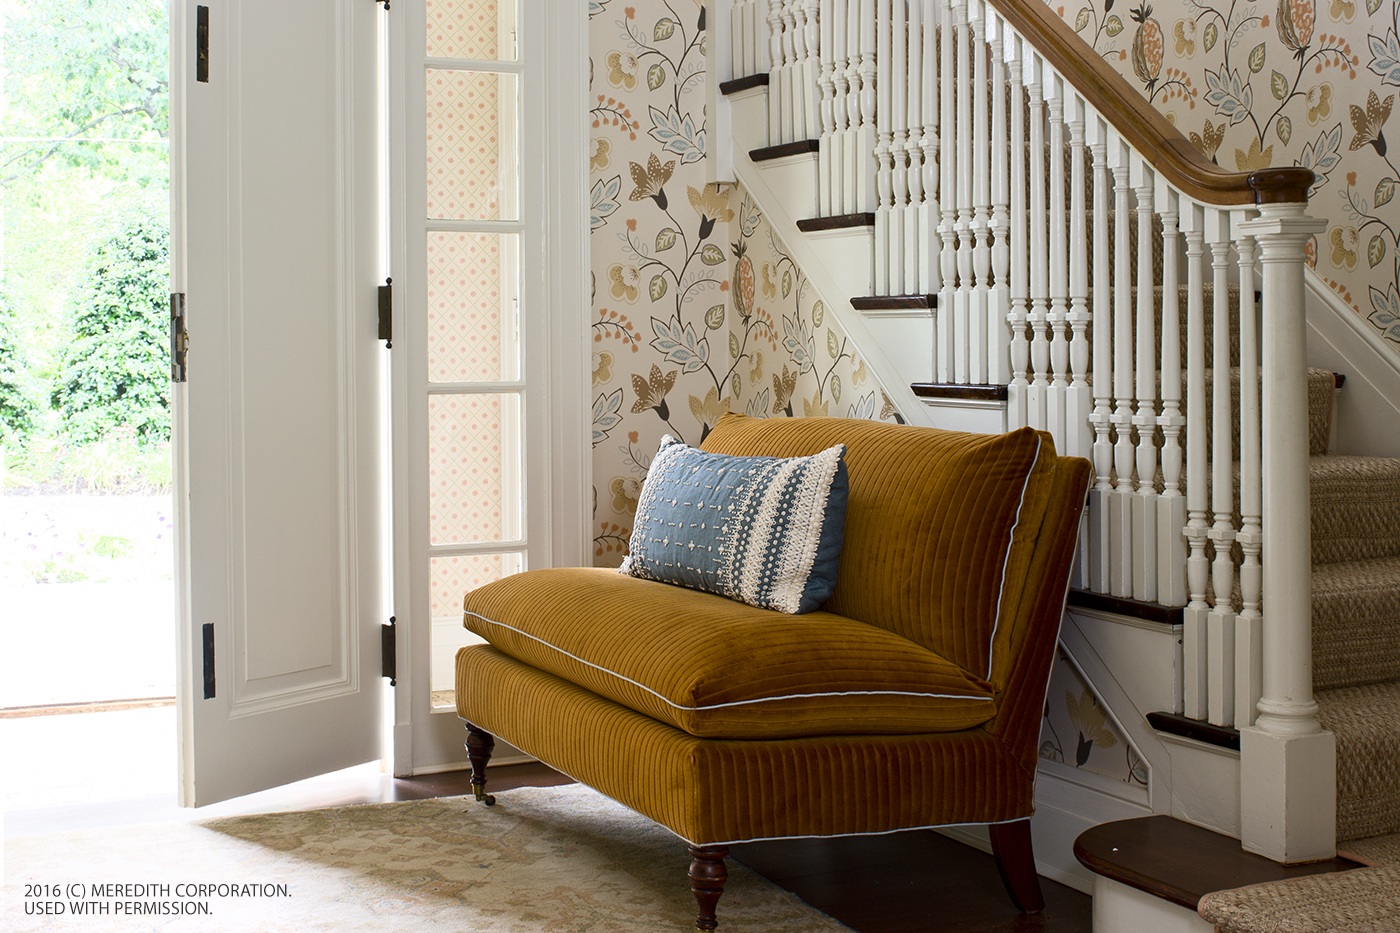 Steal These Inside Entryway Ideas to Make a Bold Entrance - bhgrelife.com